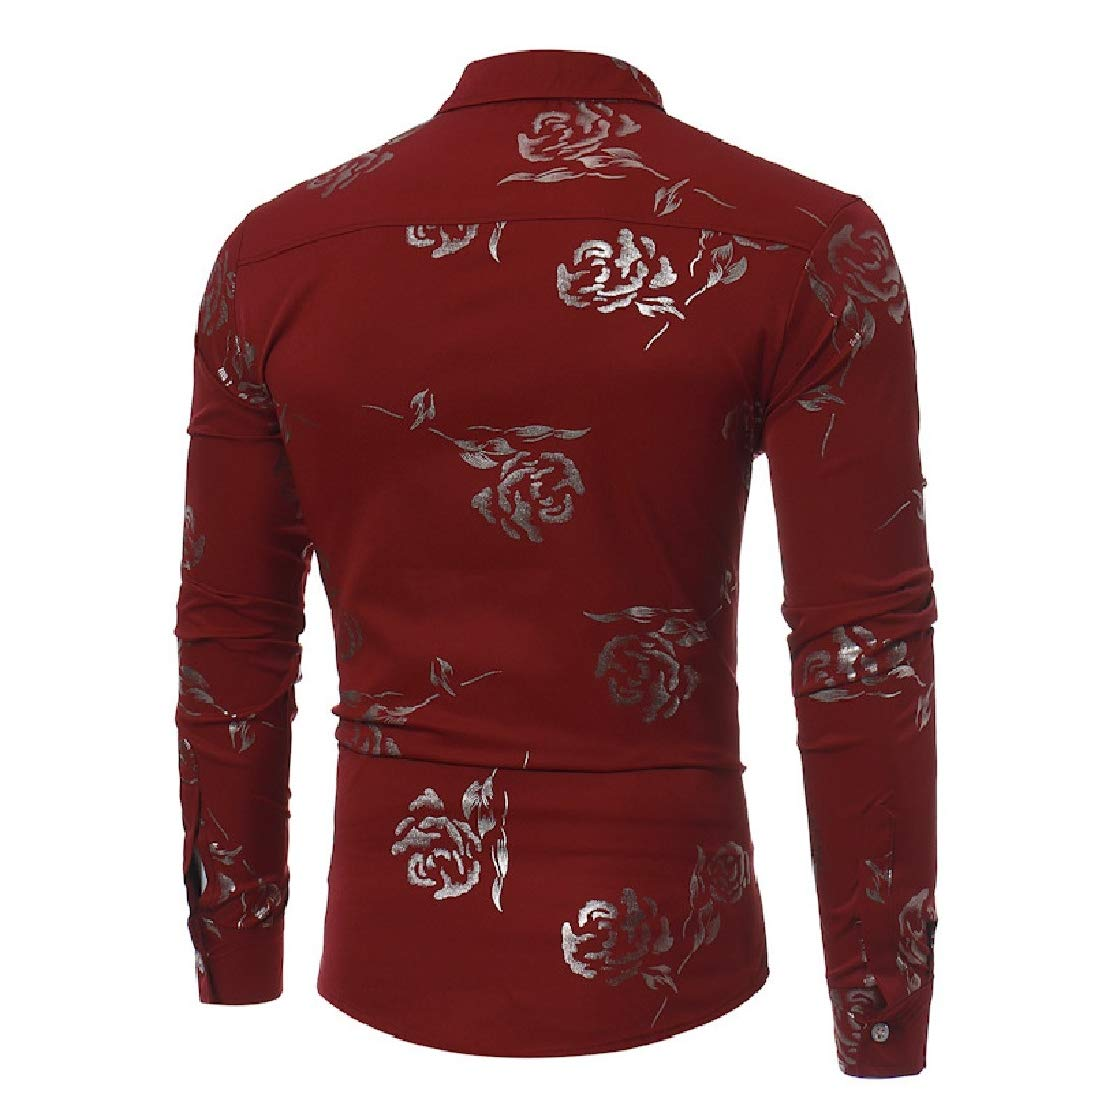 YUNY Mens Britain Regular-Fit Long-Sleeve Rose Fall /& Winter Printed Longshirt Wine Red M